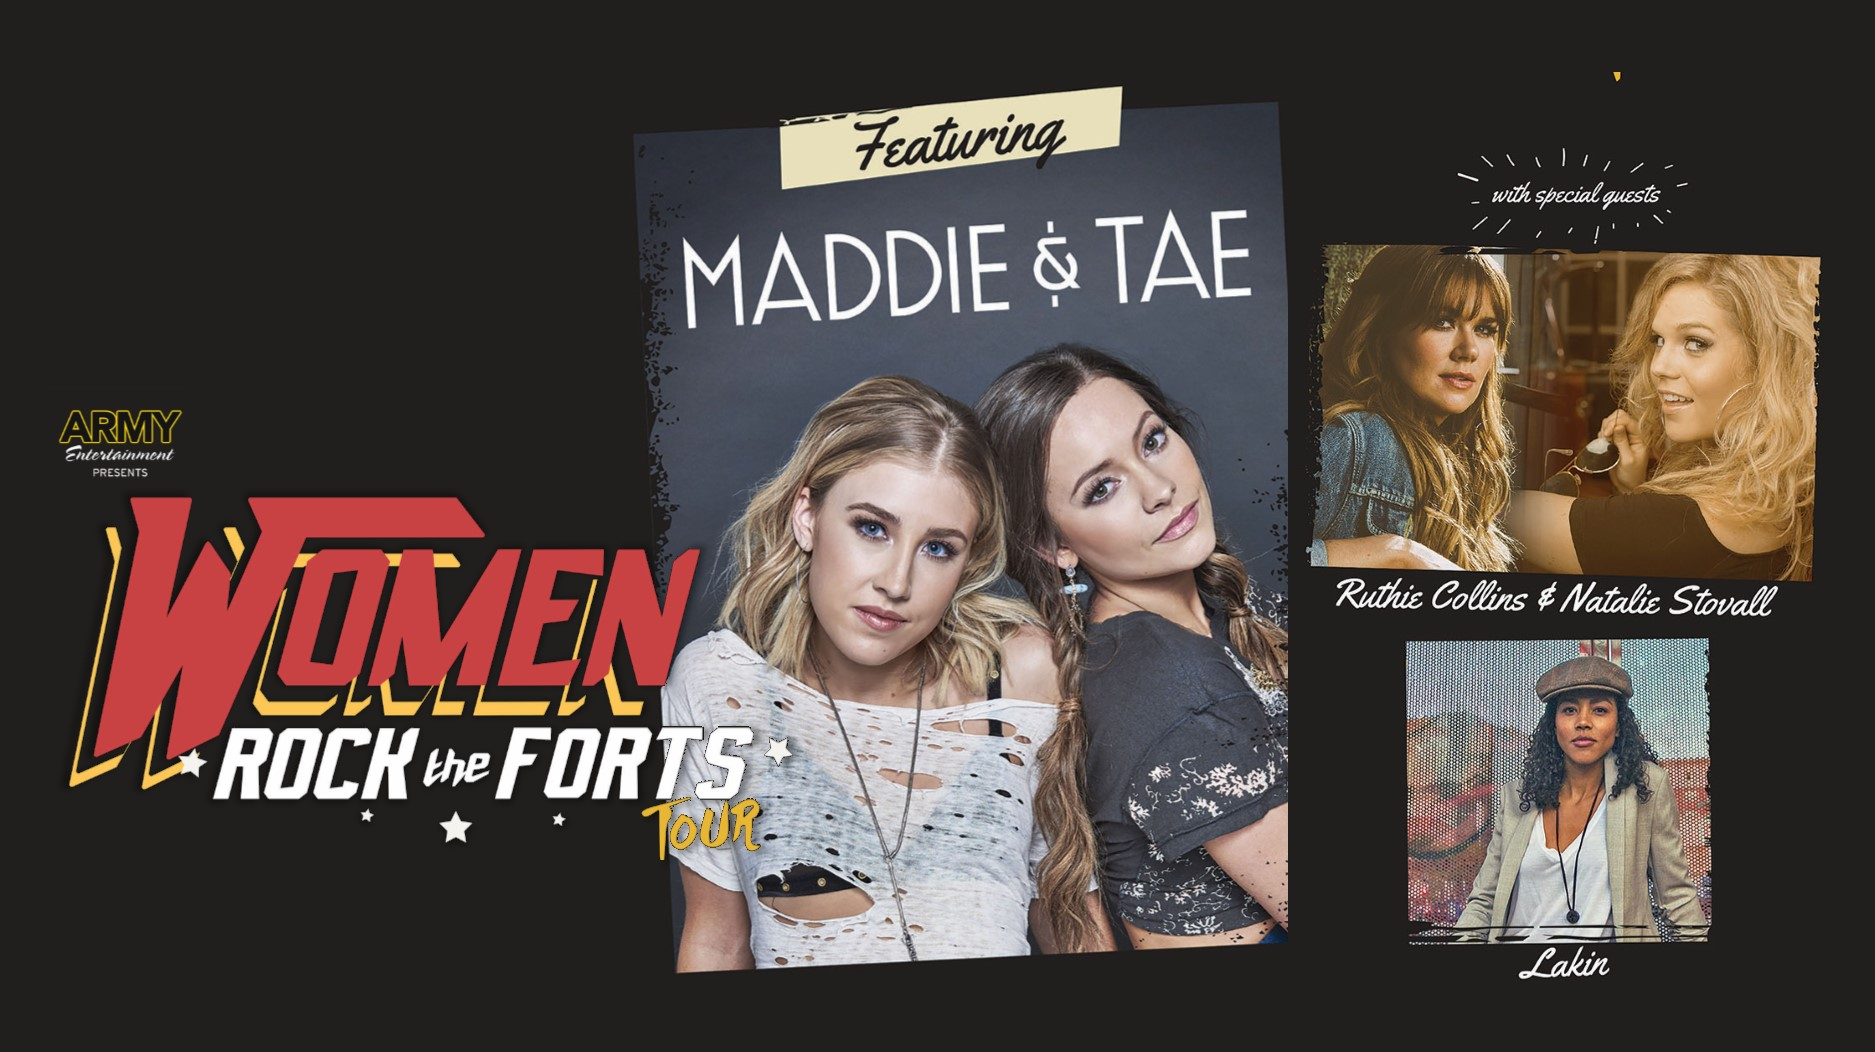 Women Rock the Forts Tour / An Evening with Maddie & Tae